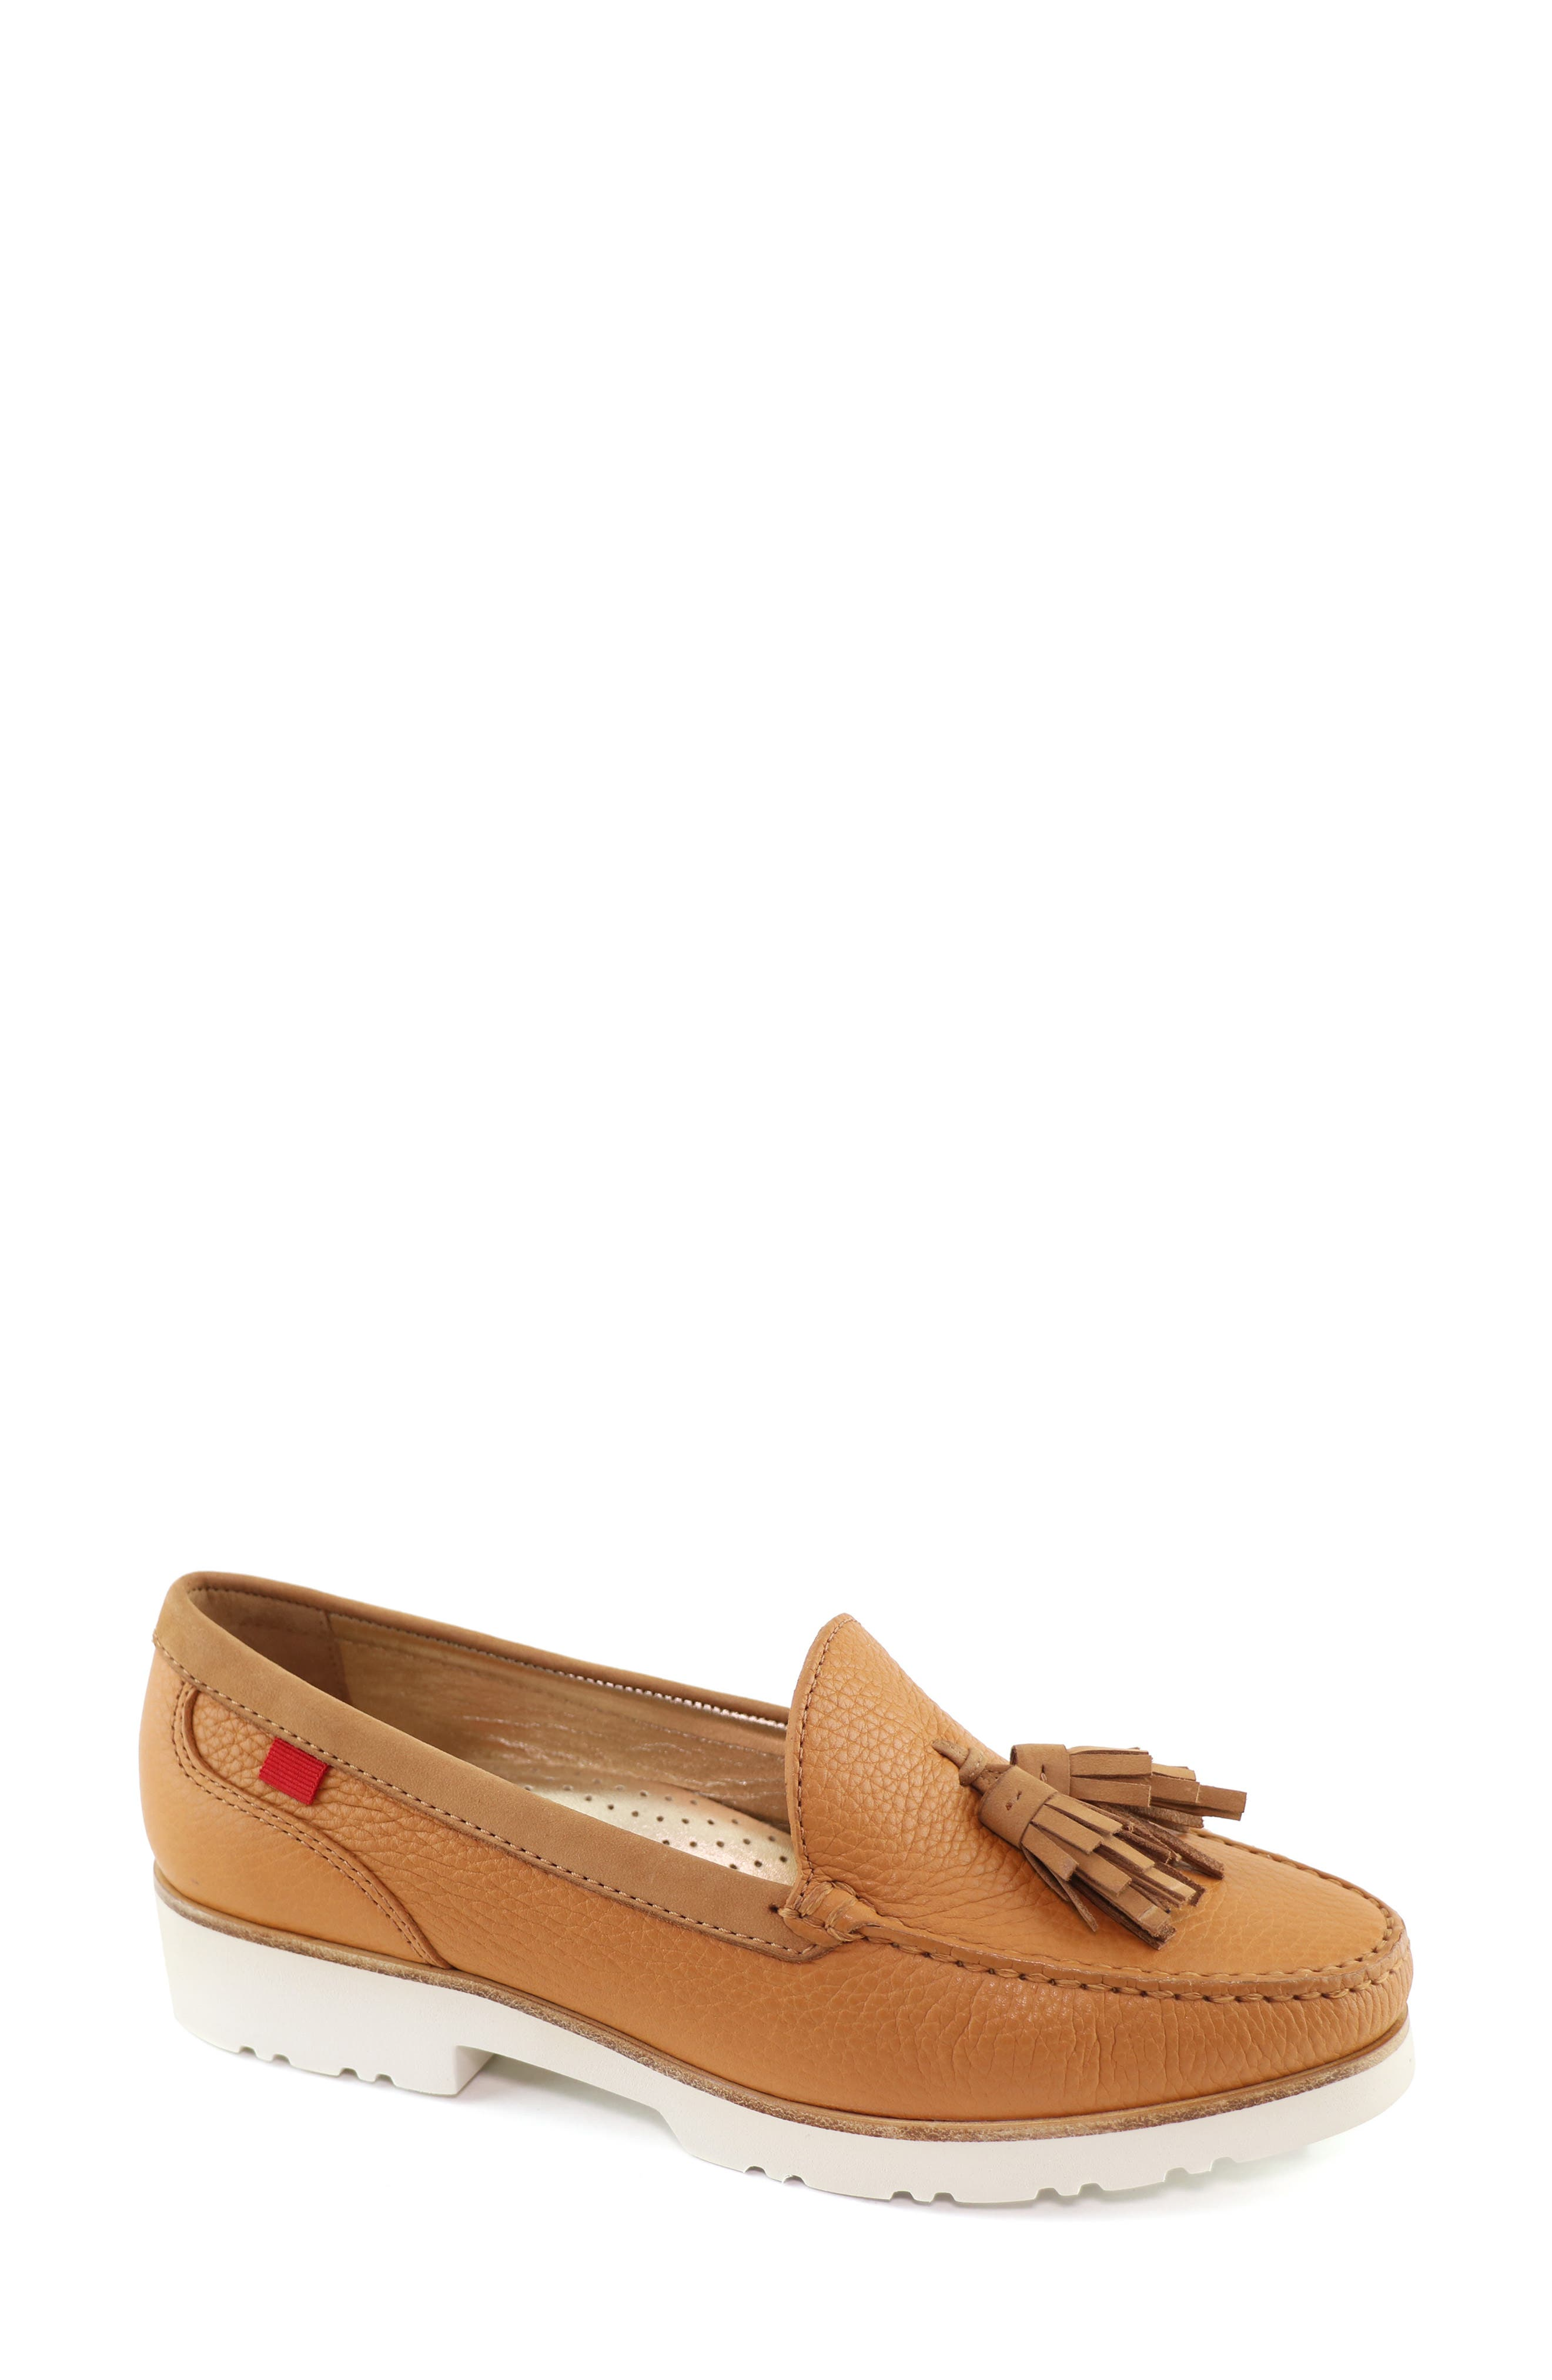 A lugged platform sole adds a modern twist to a well-cushioned loafer topped with dual tassels. Style Name: Marc Joseph New York New Brighton Platform Loafer (Women). Style Number: 5977817. Available in stores.